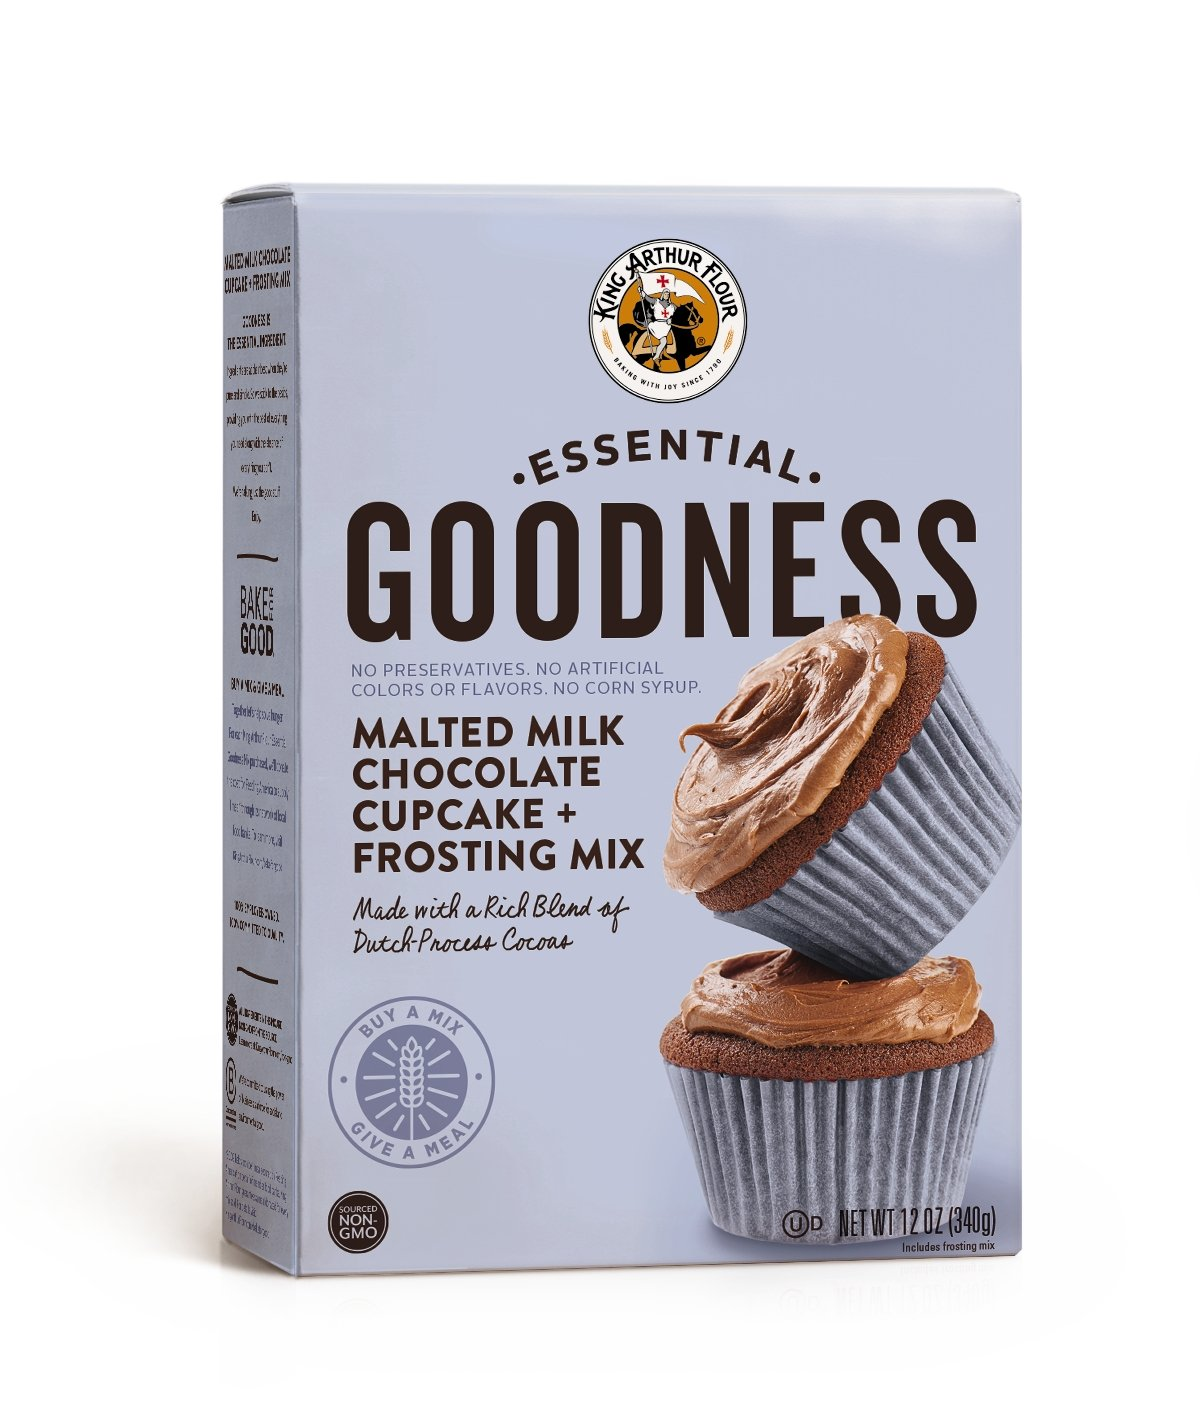 King Arthur Flour Essential Goodness Malted Milk Chocolate Cupcake Plus Frosting Mix, 12 Ounce